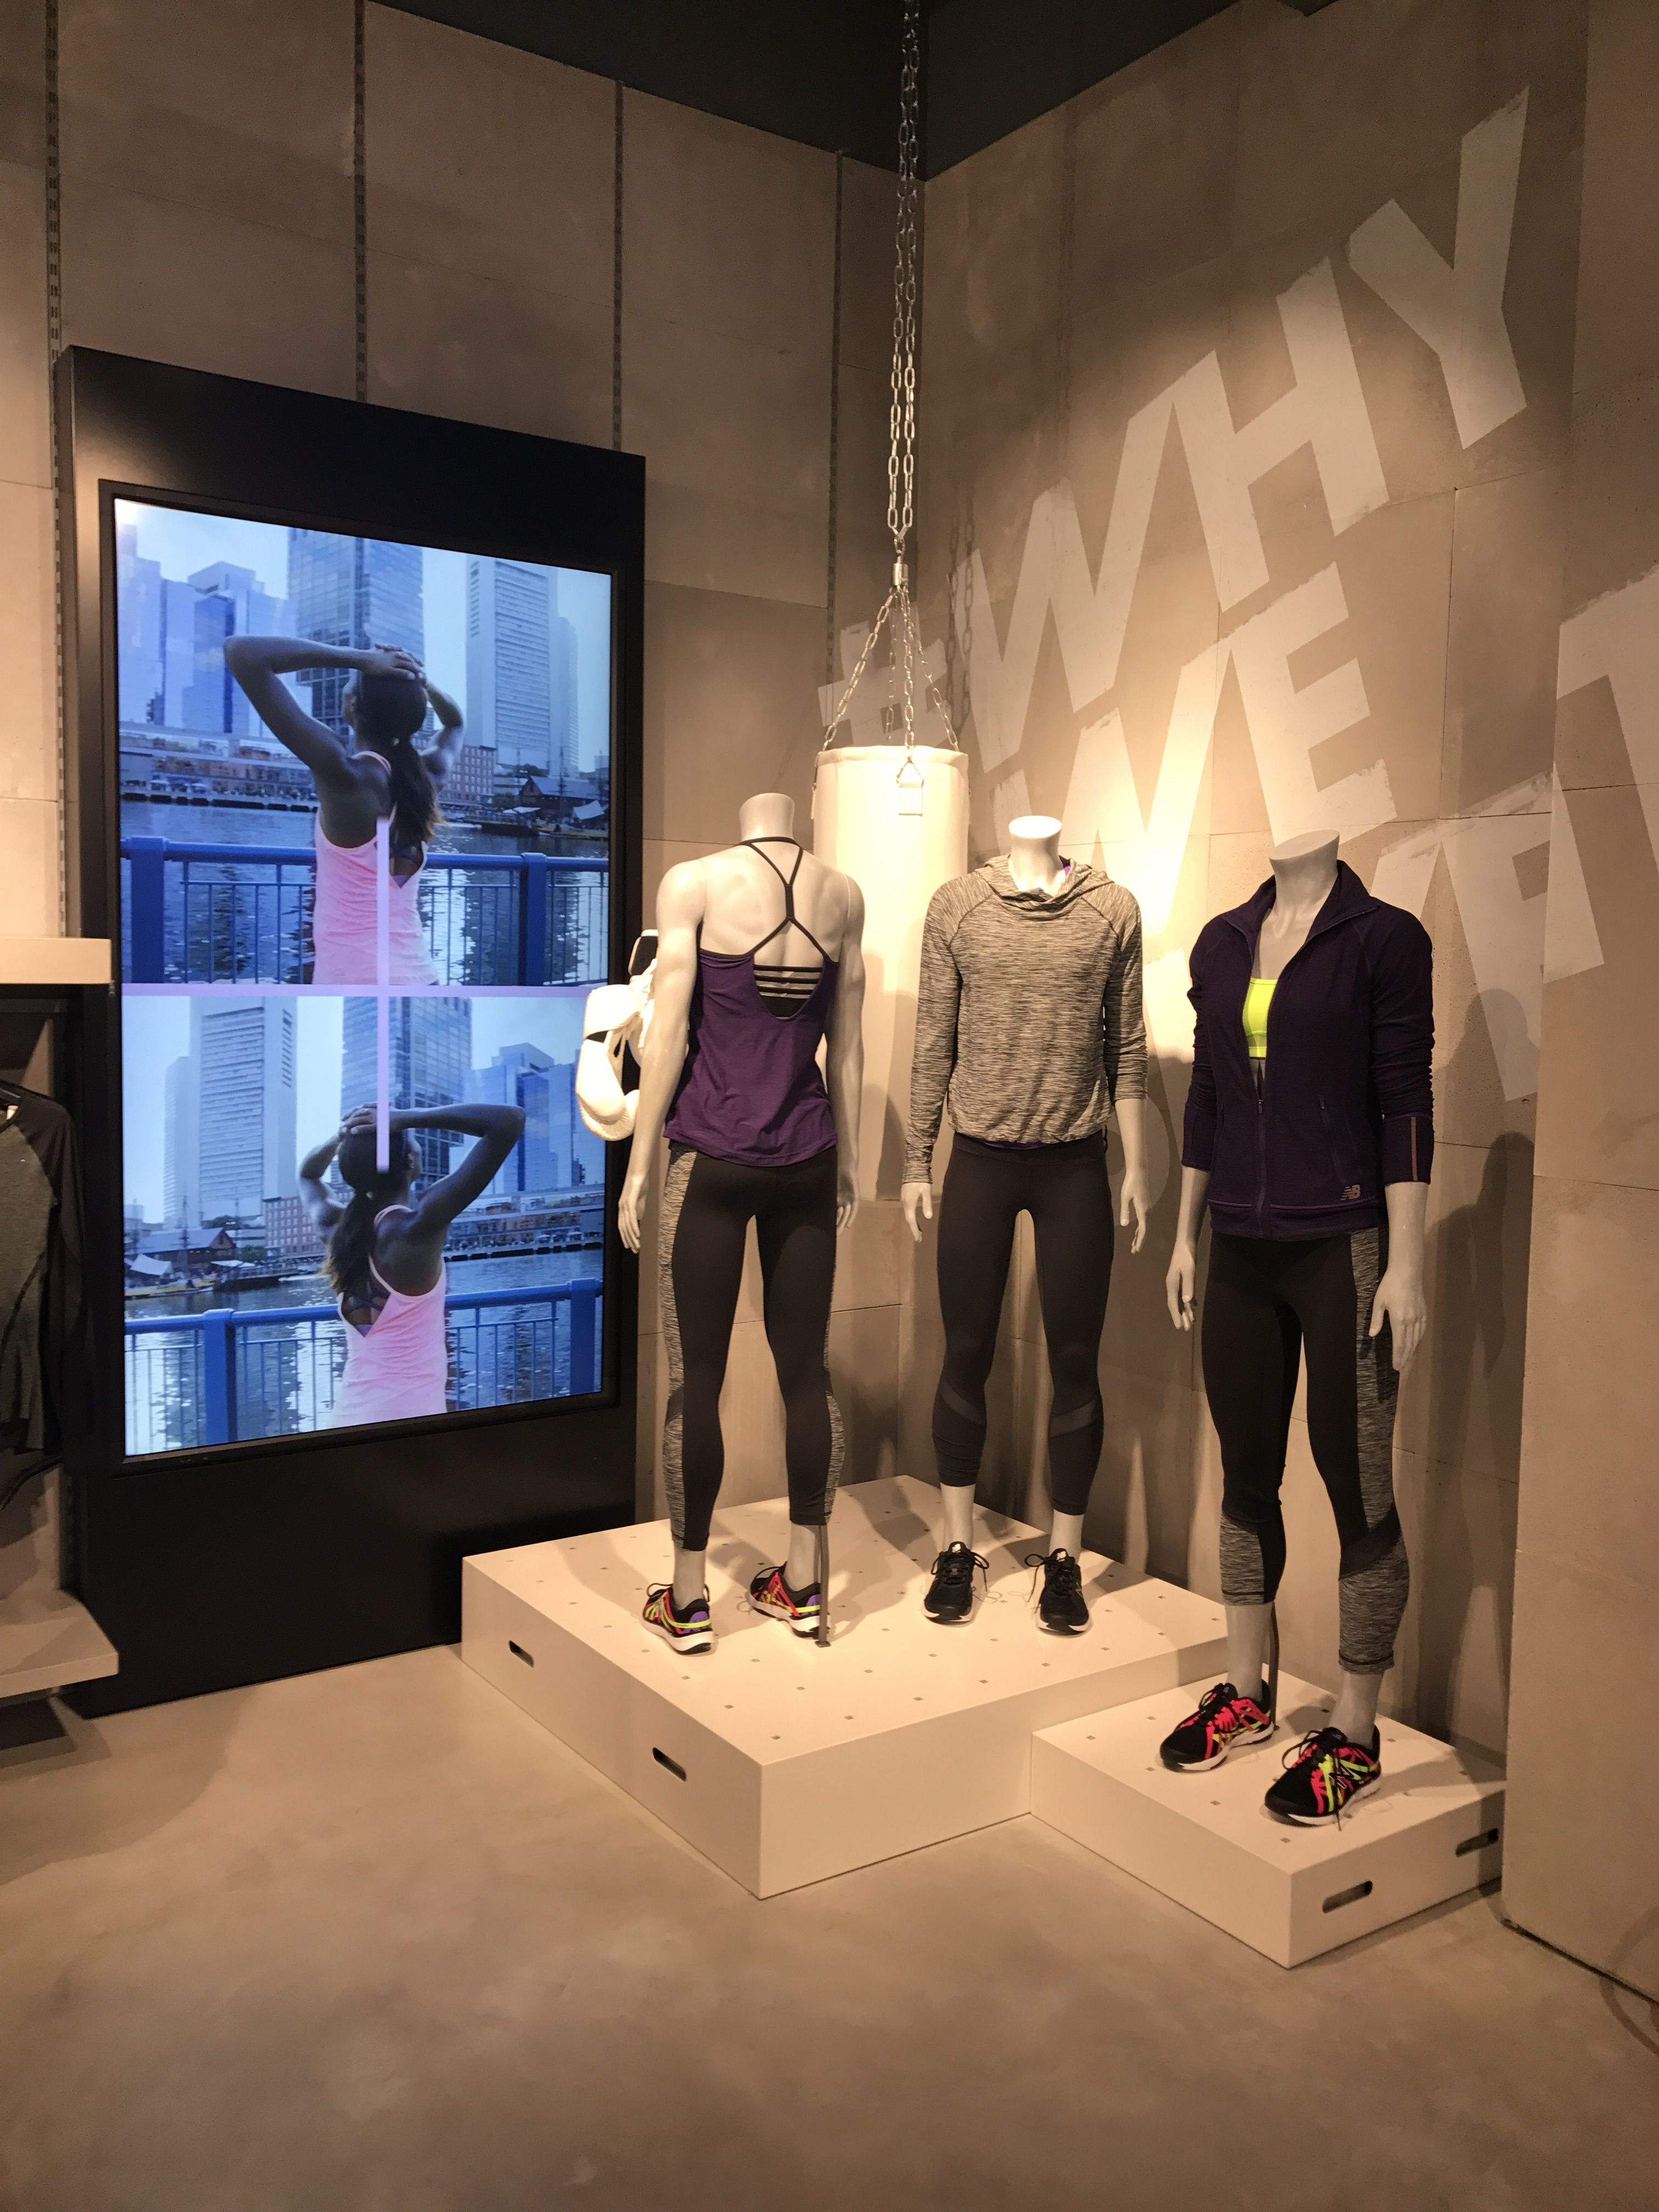 1231e6a47c New Balance - Central London, April 2017 Lead in #sportbrands #retail #vm  #visualmerchandising #newbalance